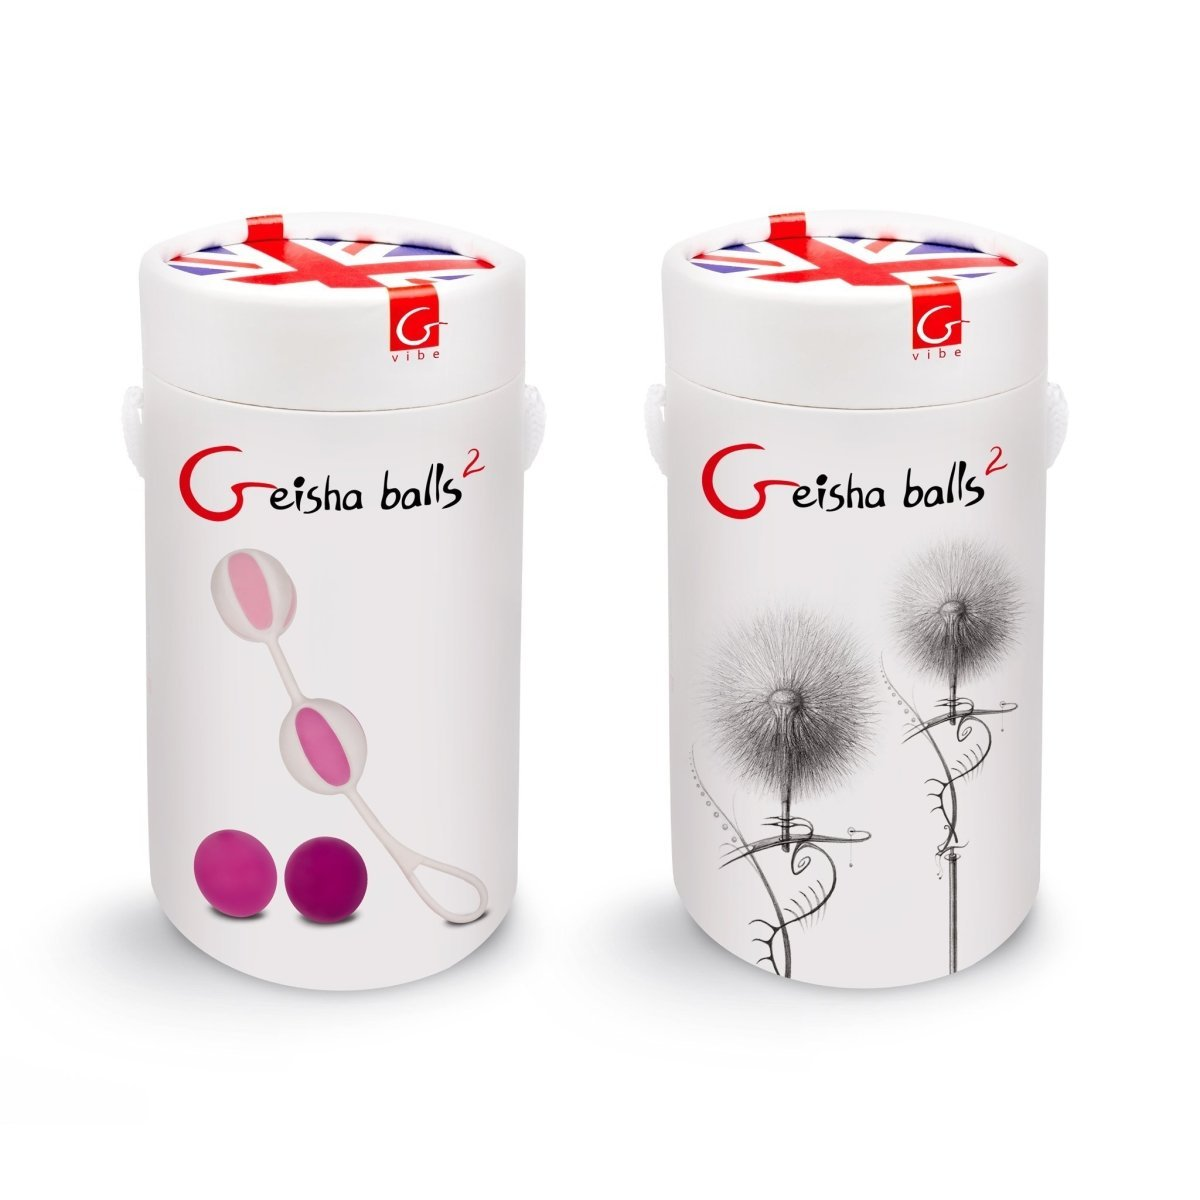 Geisha Balls 2 - Pink - Vaginal Balls for Kegel Exercises - Buy Sex Toys Gvibe.com